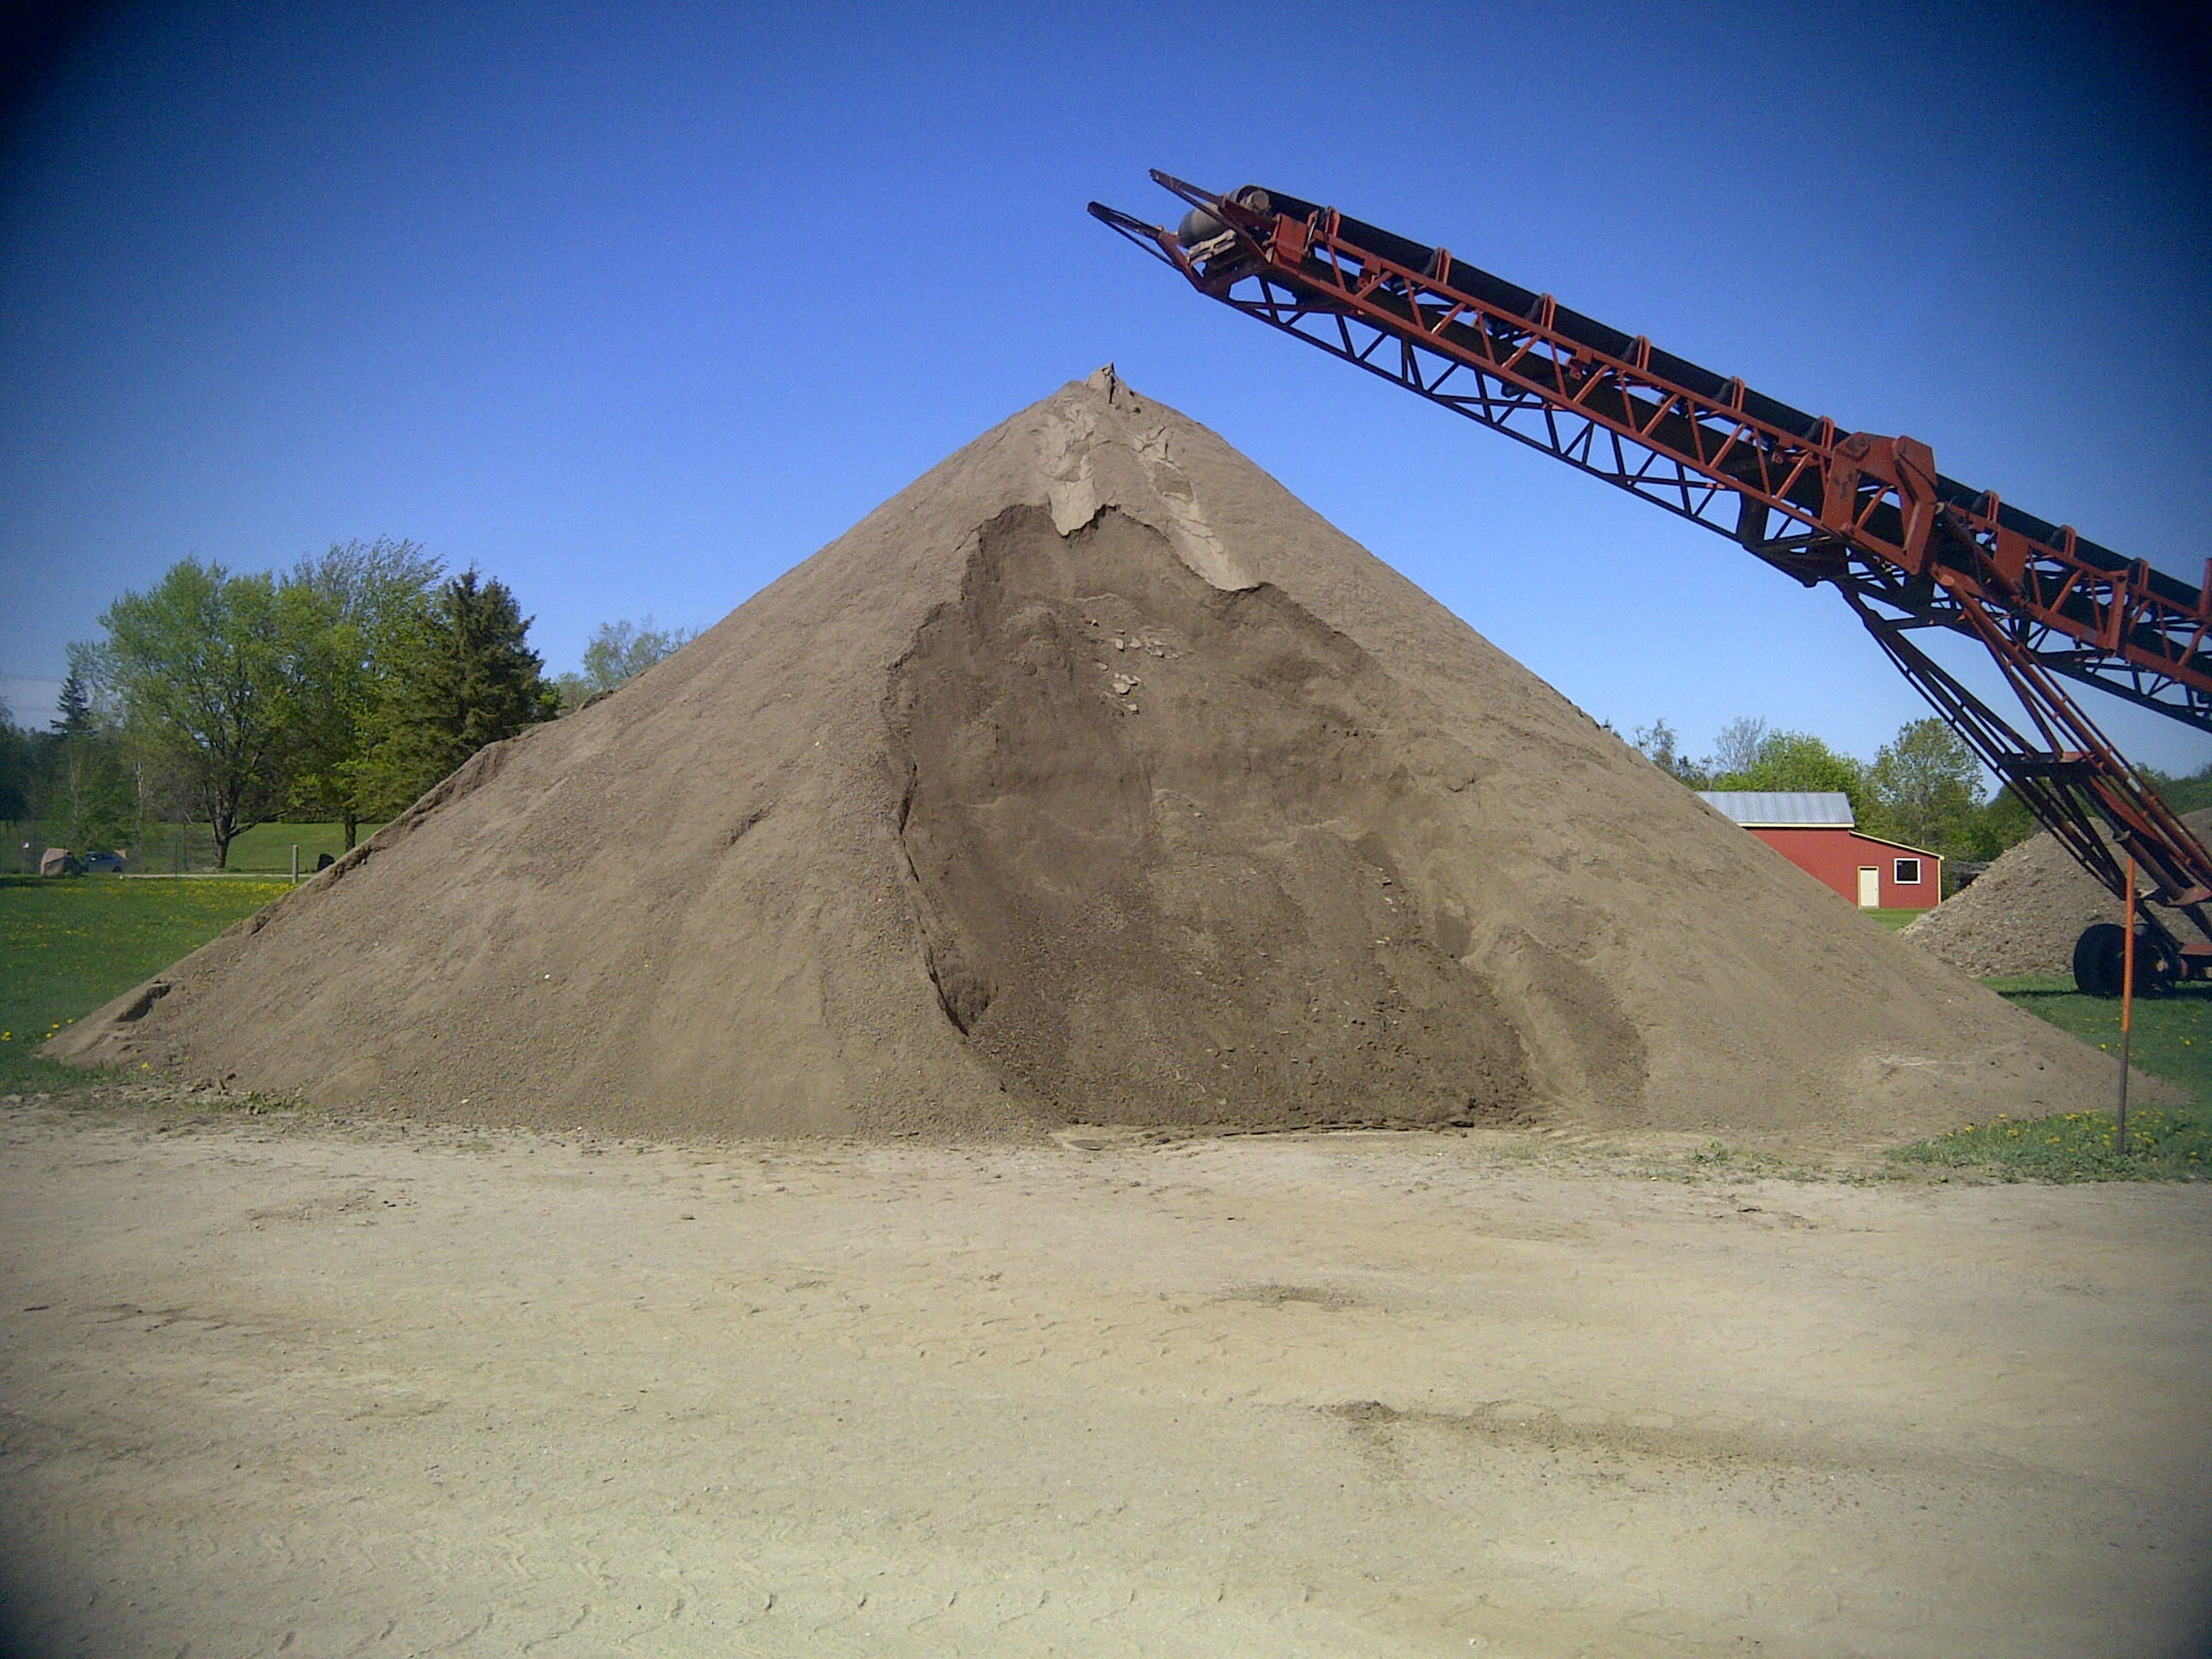 FRESHLY SCREENED TOPSOIL READY FOR YOUR LAWN OR LANDSCAPING PROJECT